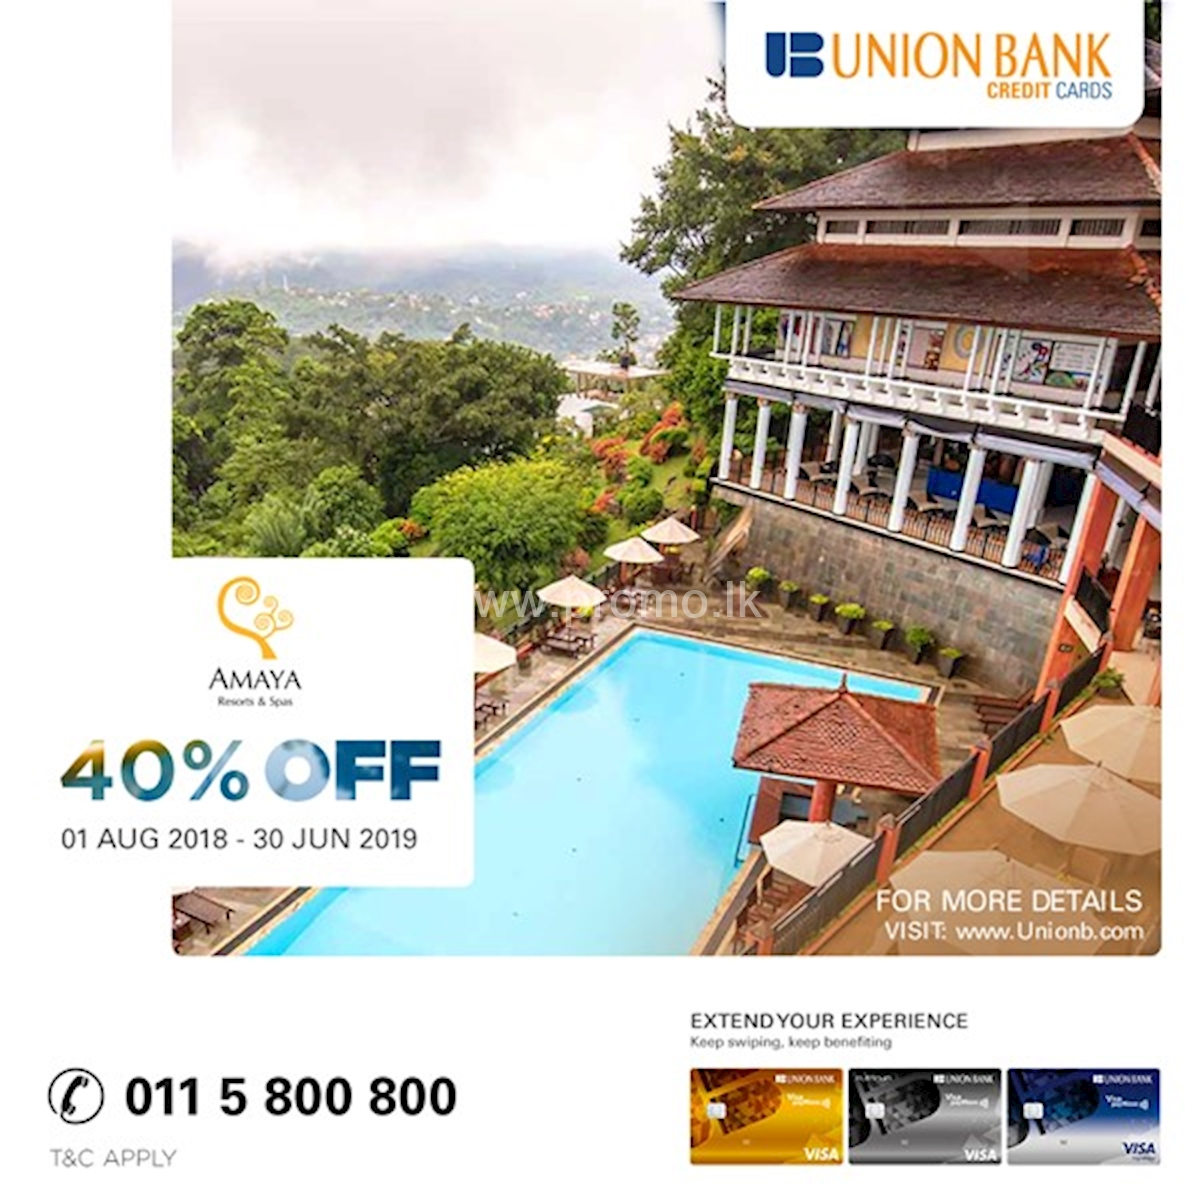 Get 40% Off at Amaya Resort and Spa exclusively for Union Bank Cardholders